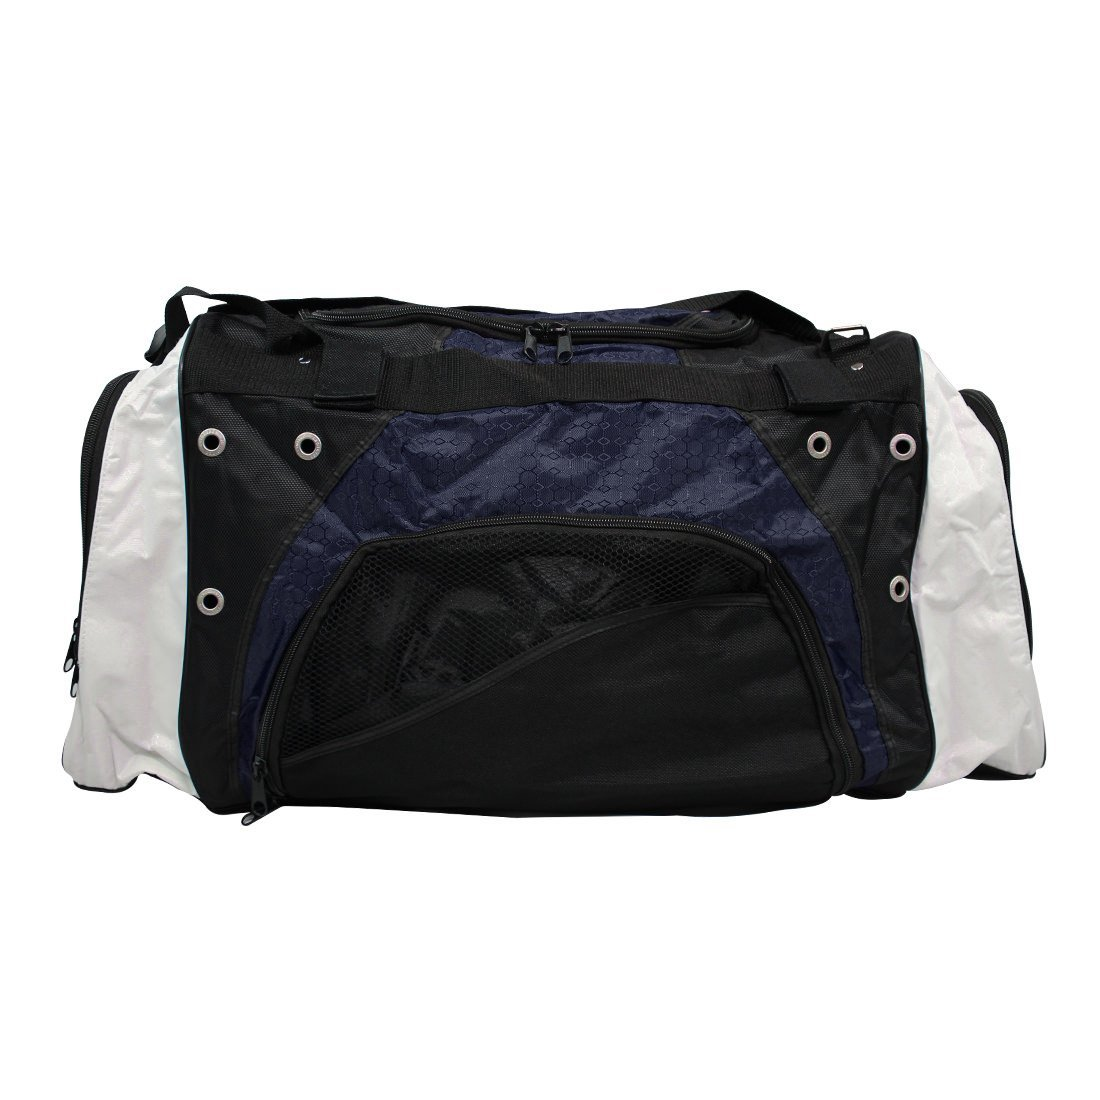 Lacrosse Unlimited Recon Duffle Bag - Navy